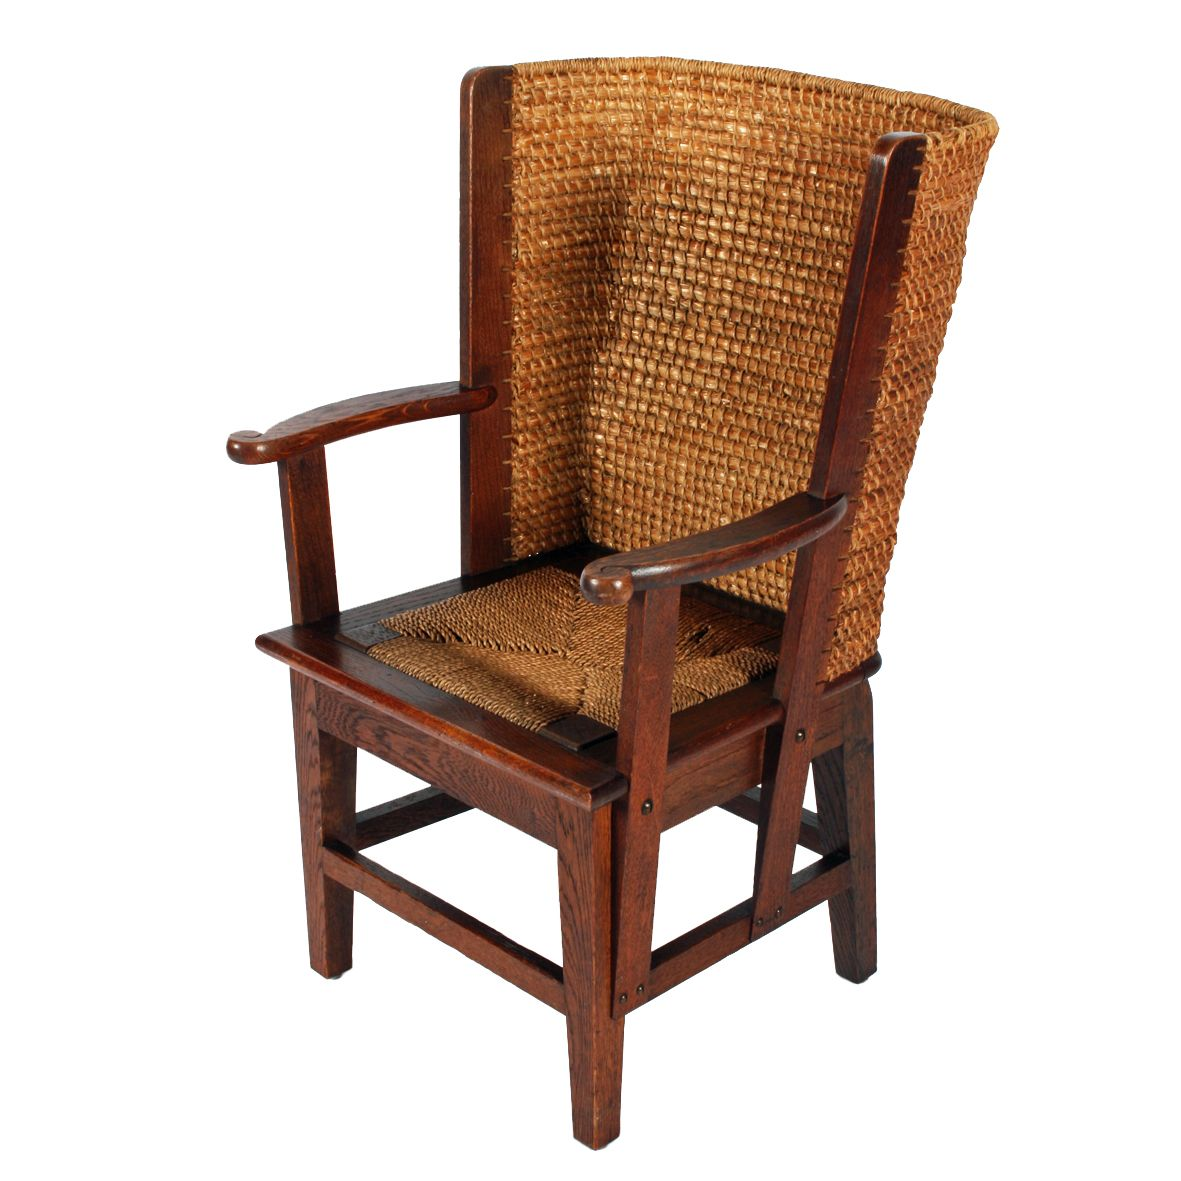 Lady's Oak Orkney Chair   Antique chairs and Victorian